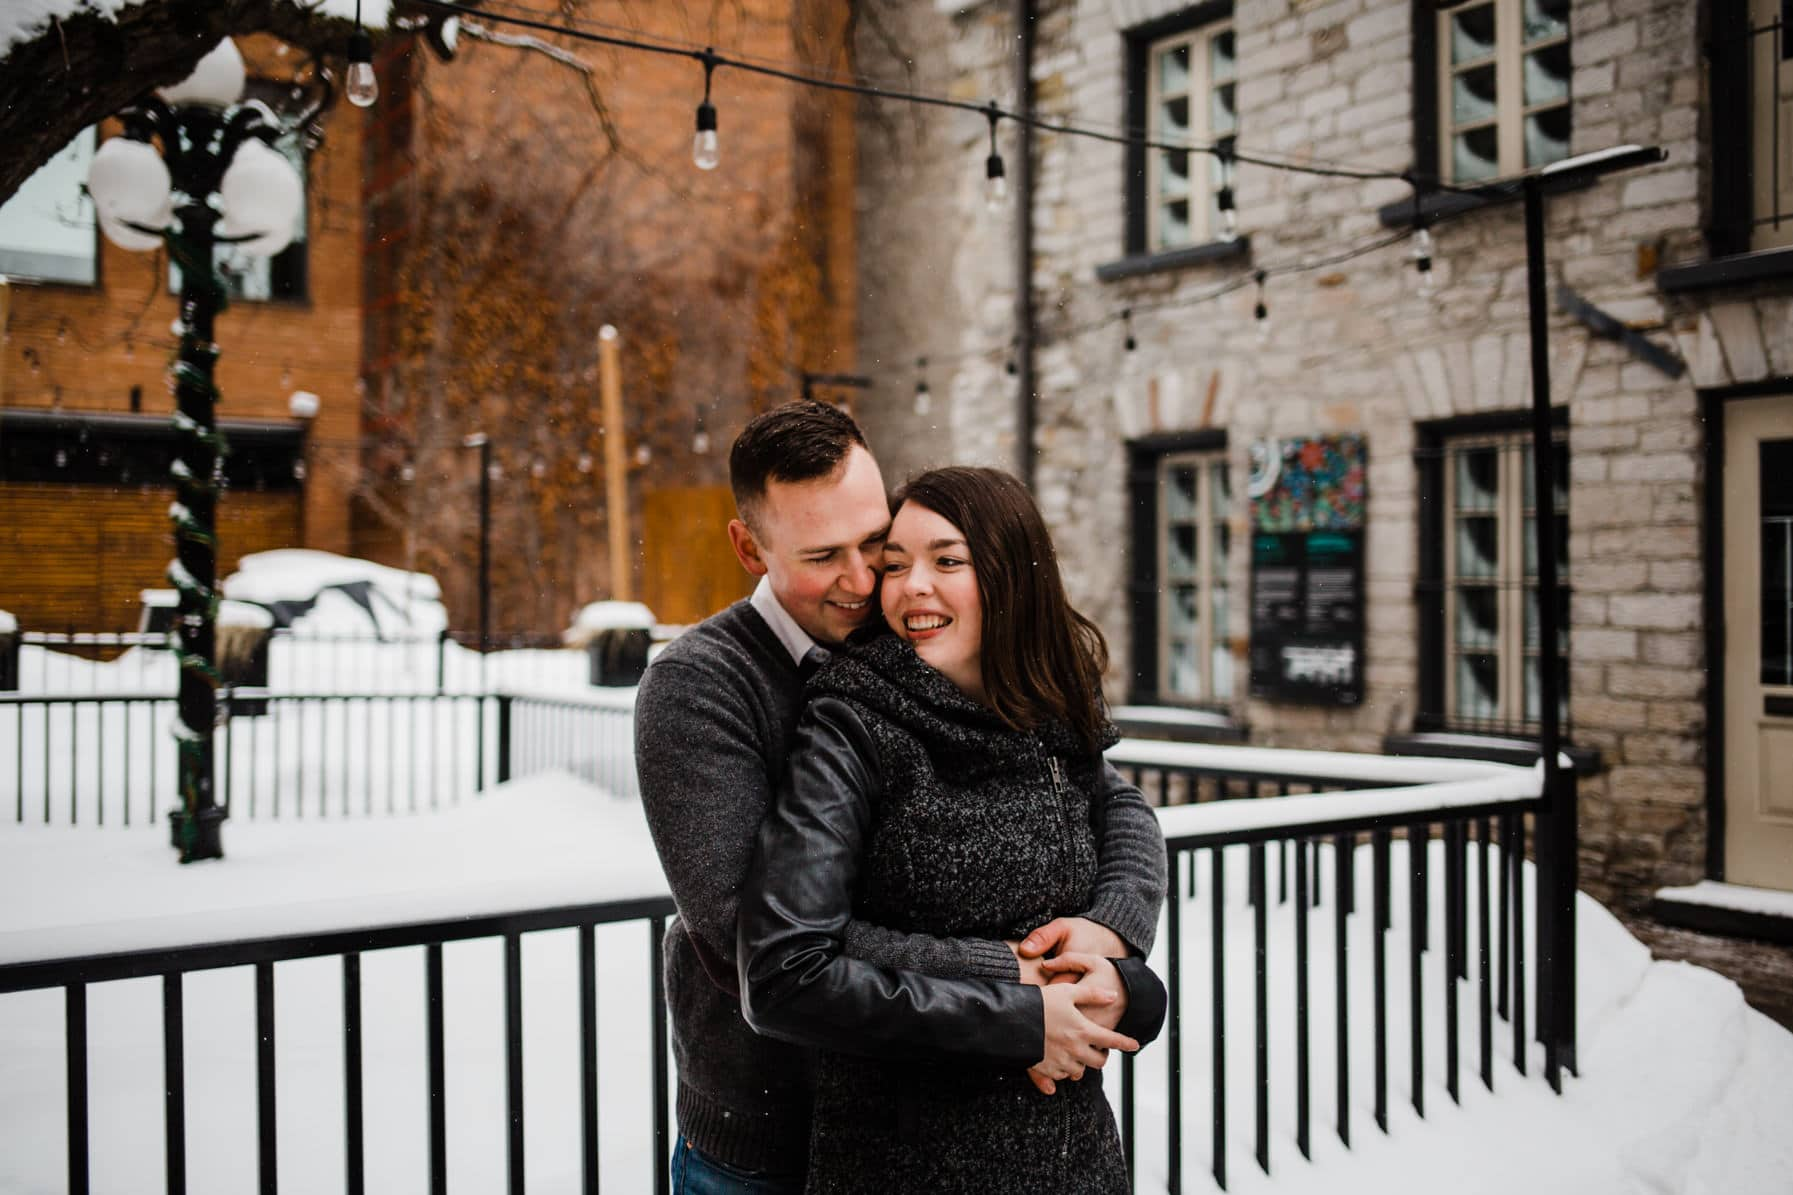 Downtown Ottawa Engagement Session - Couple laugh together outdoors